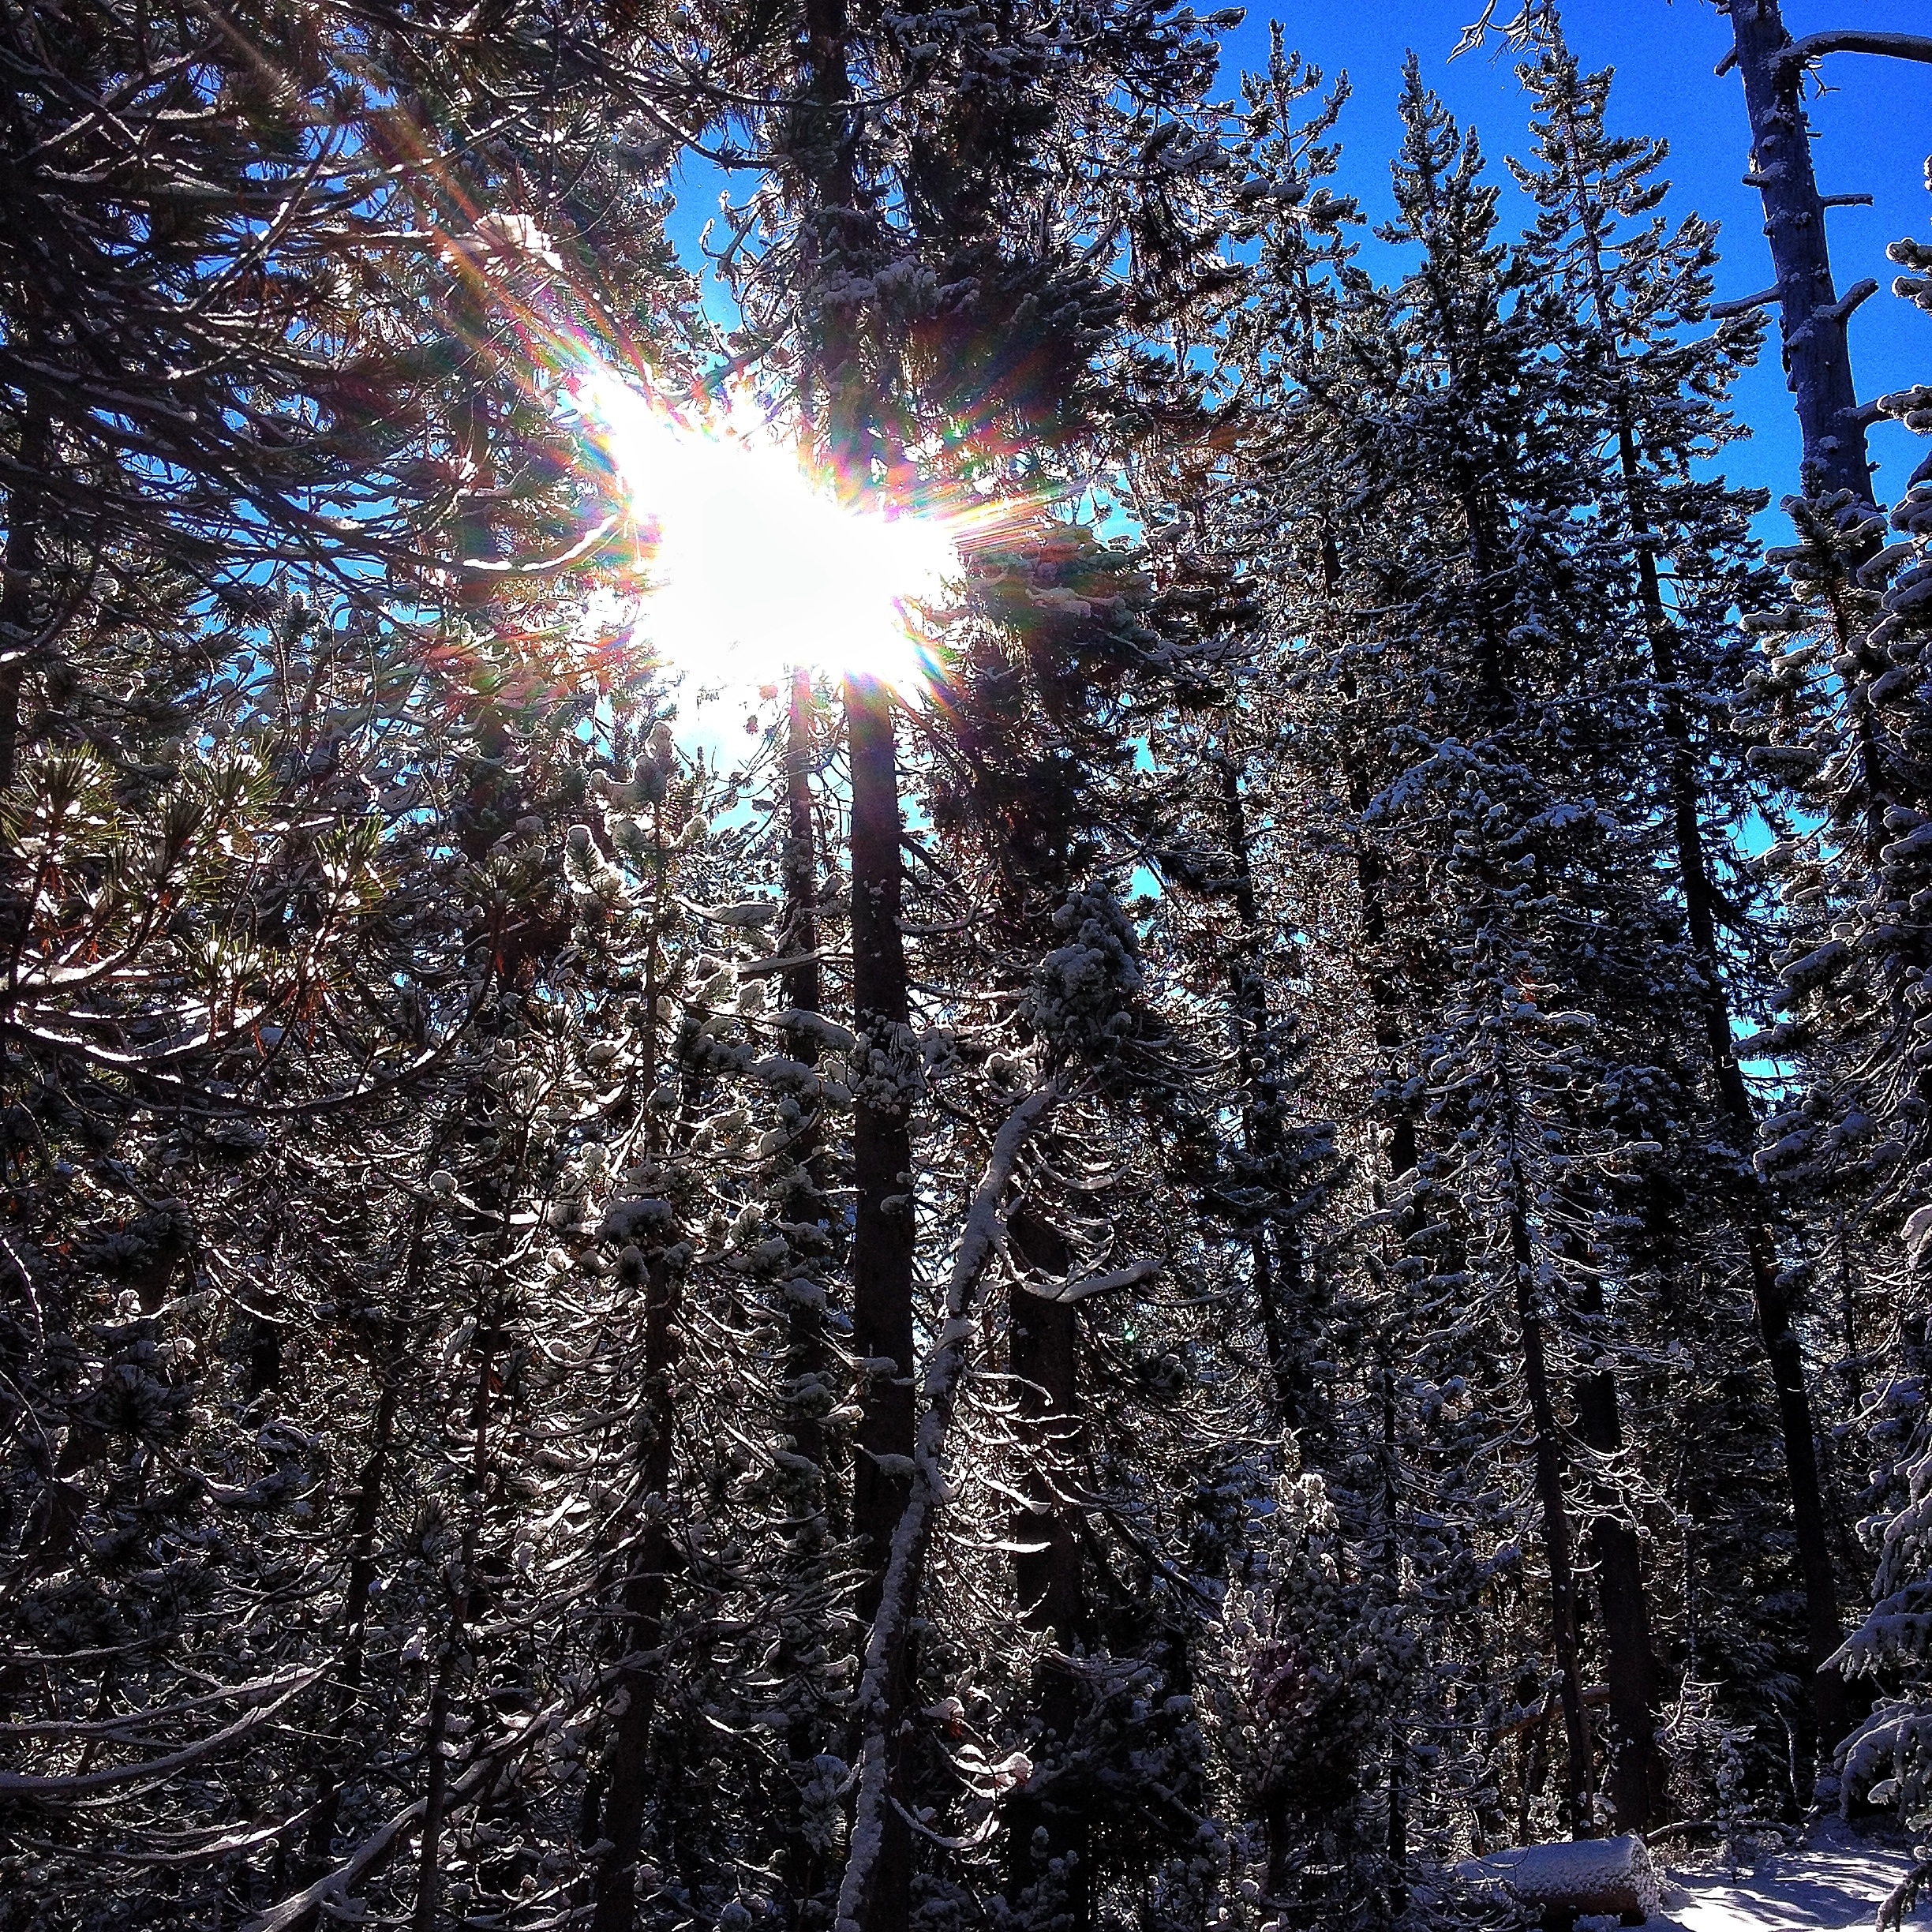 Sun shining through the moss, pines and snow.